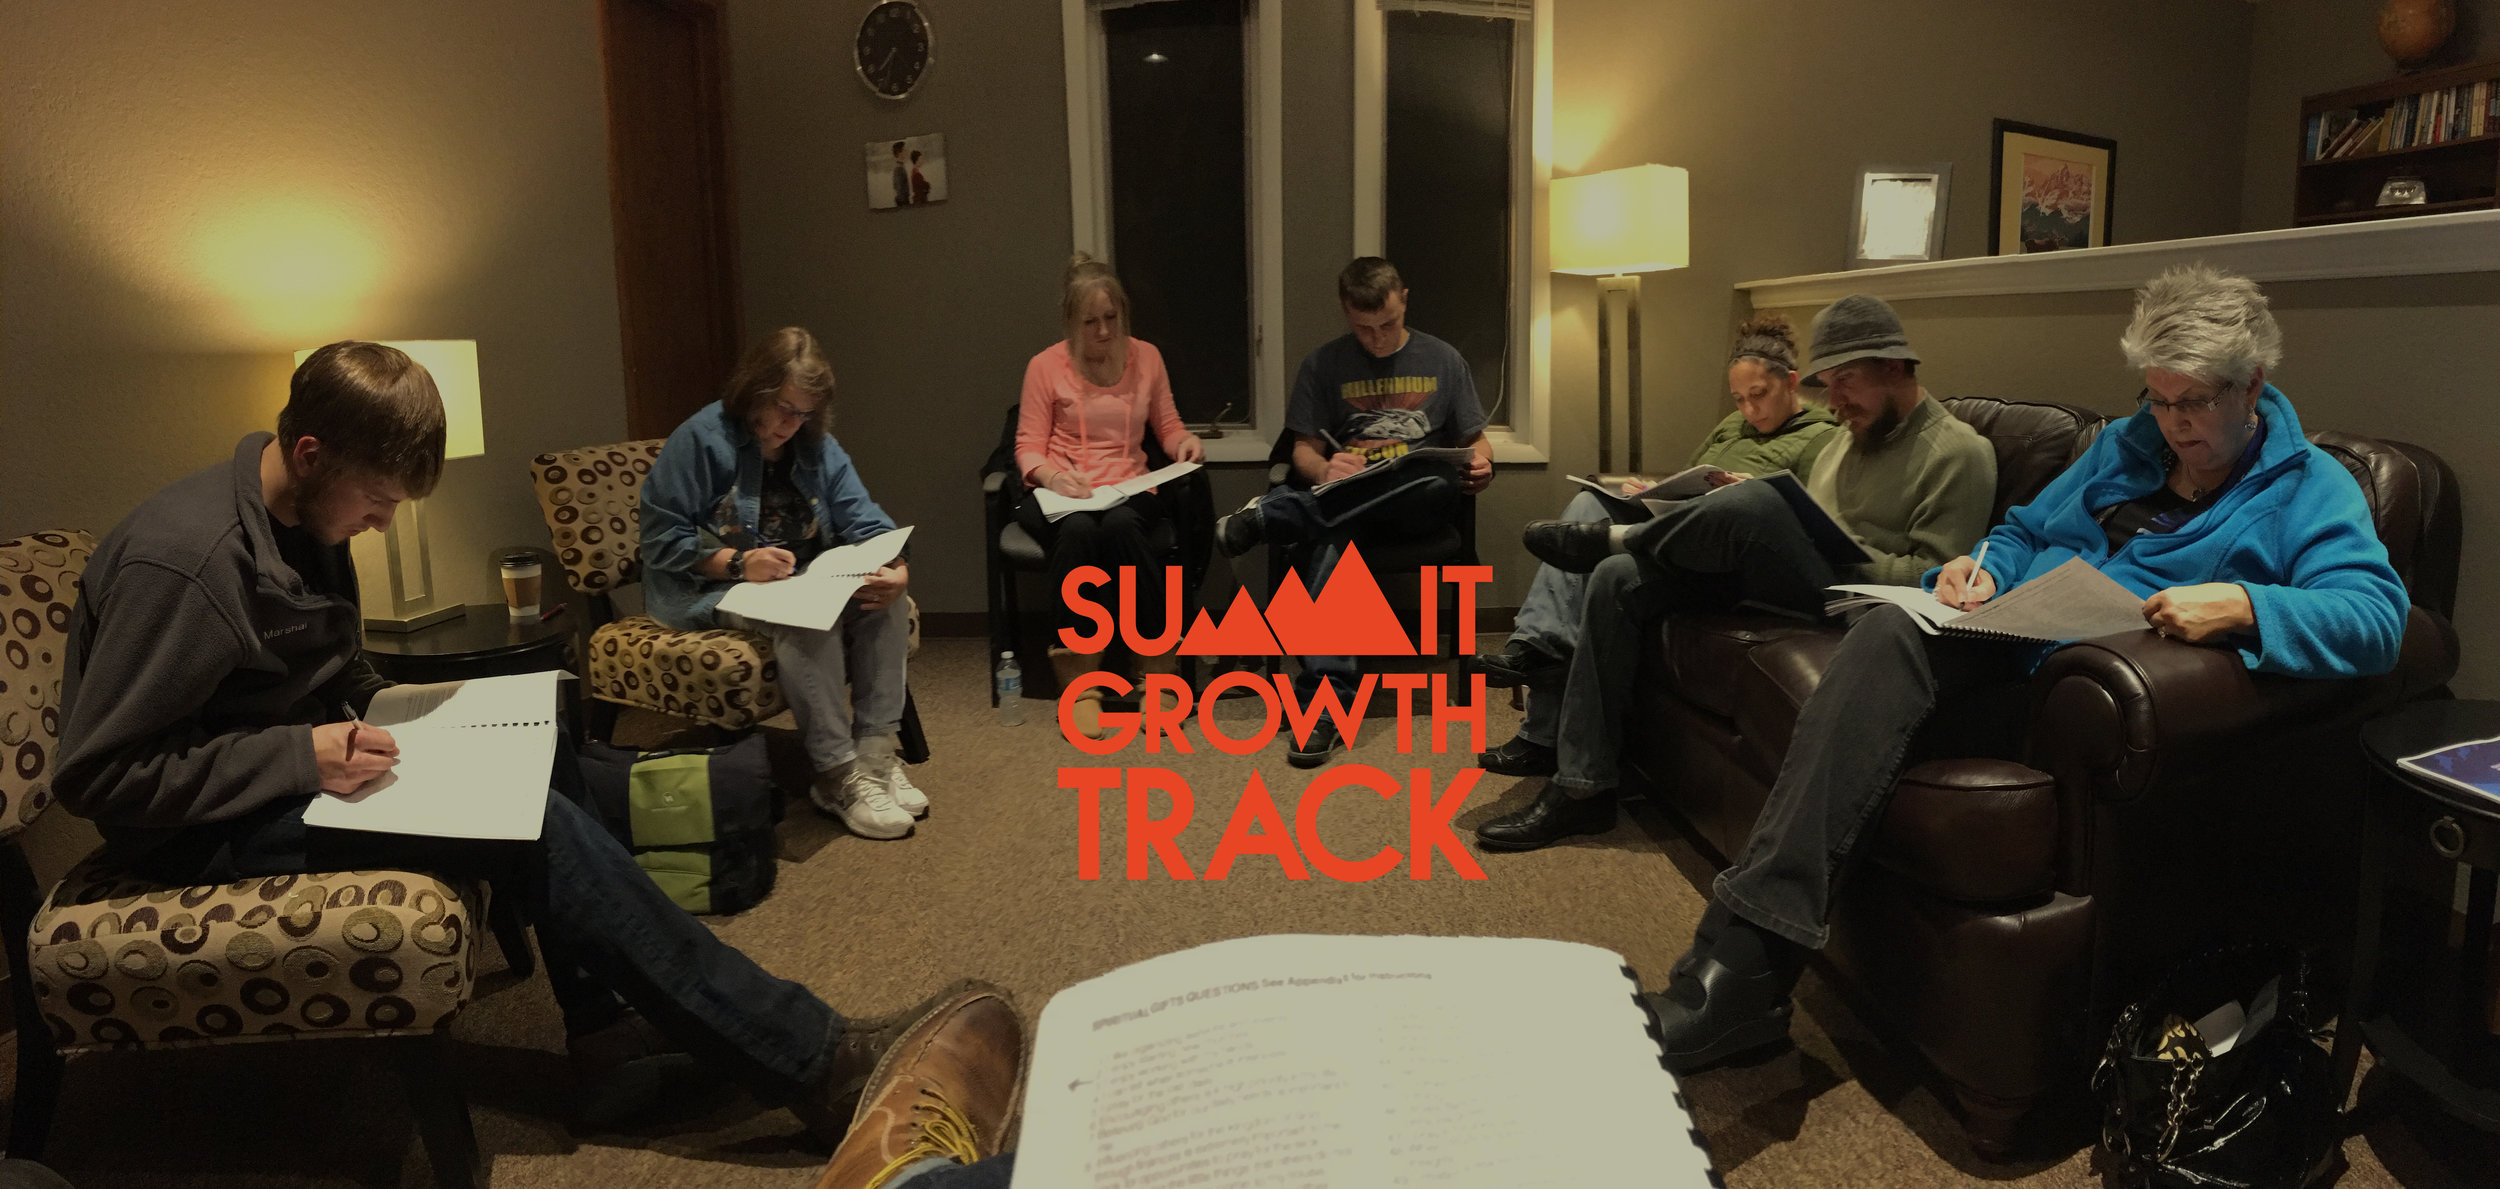 Summit Growth Track Highland Church Plover Wi